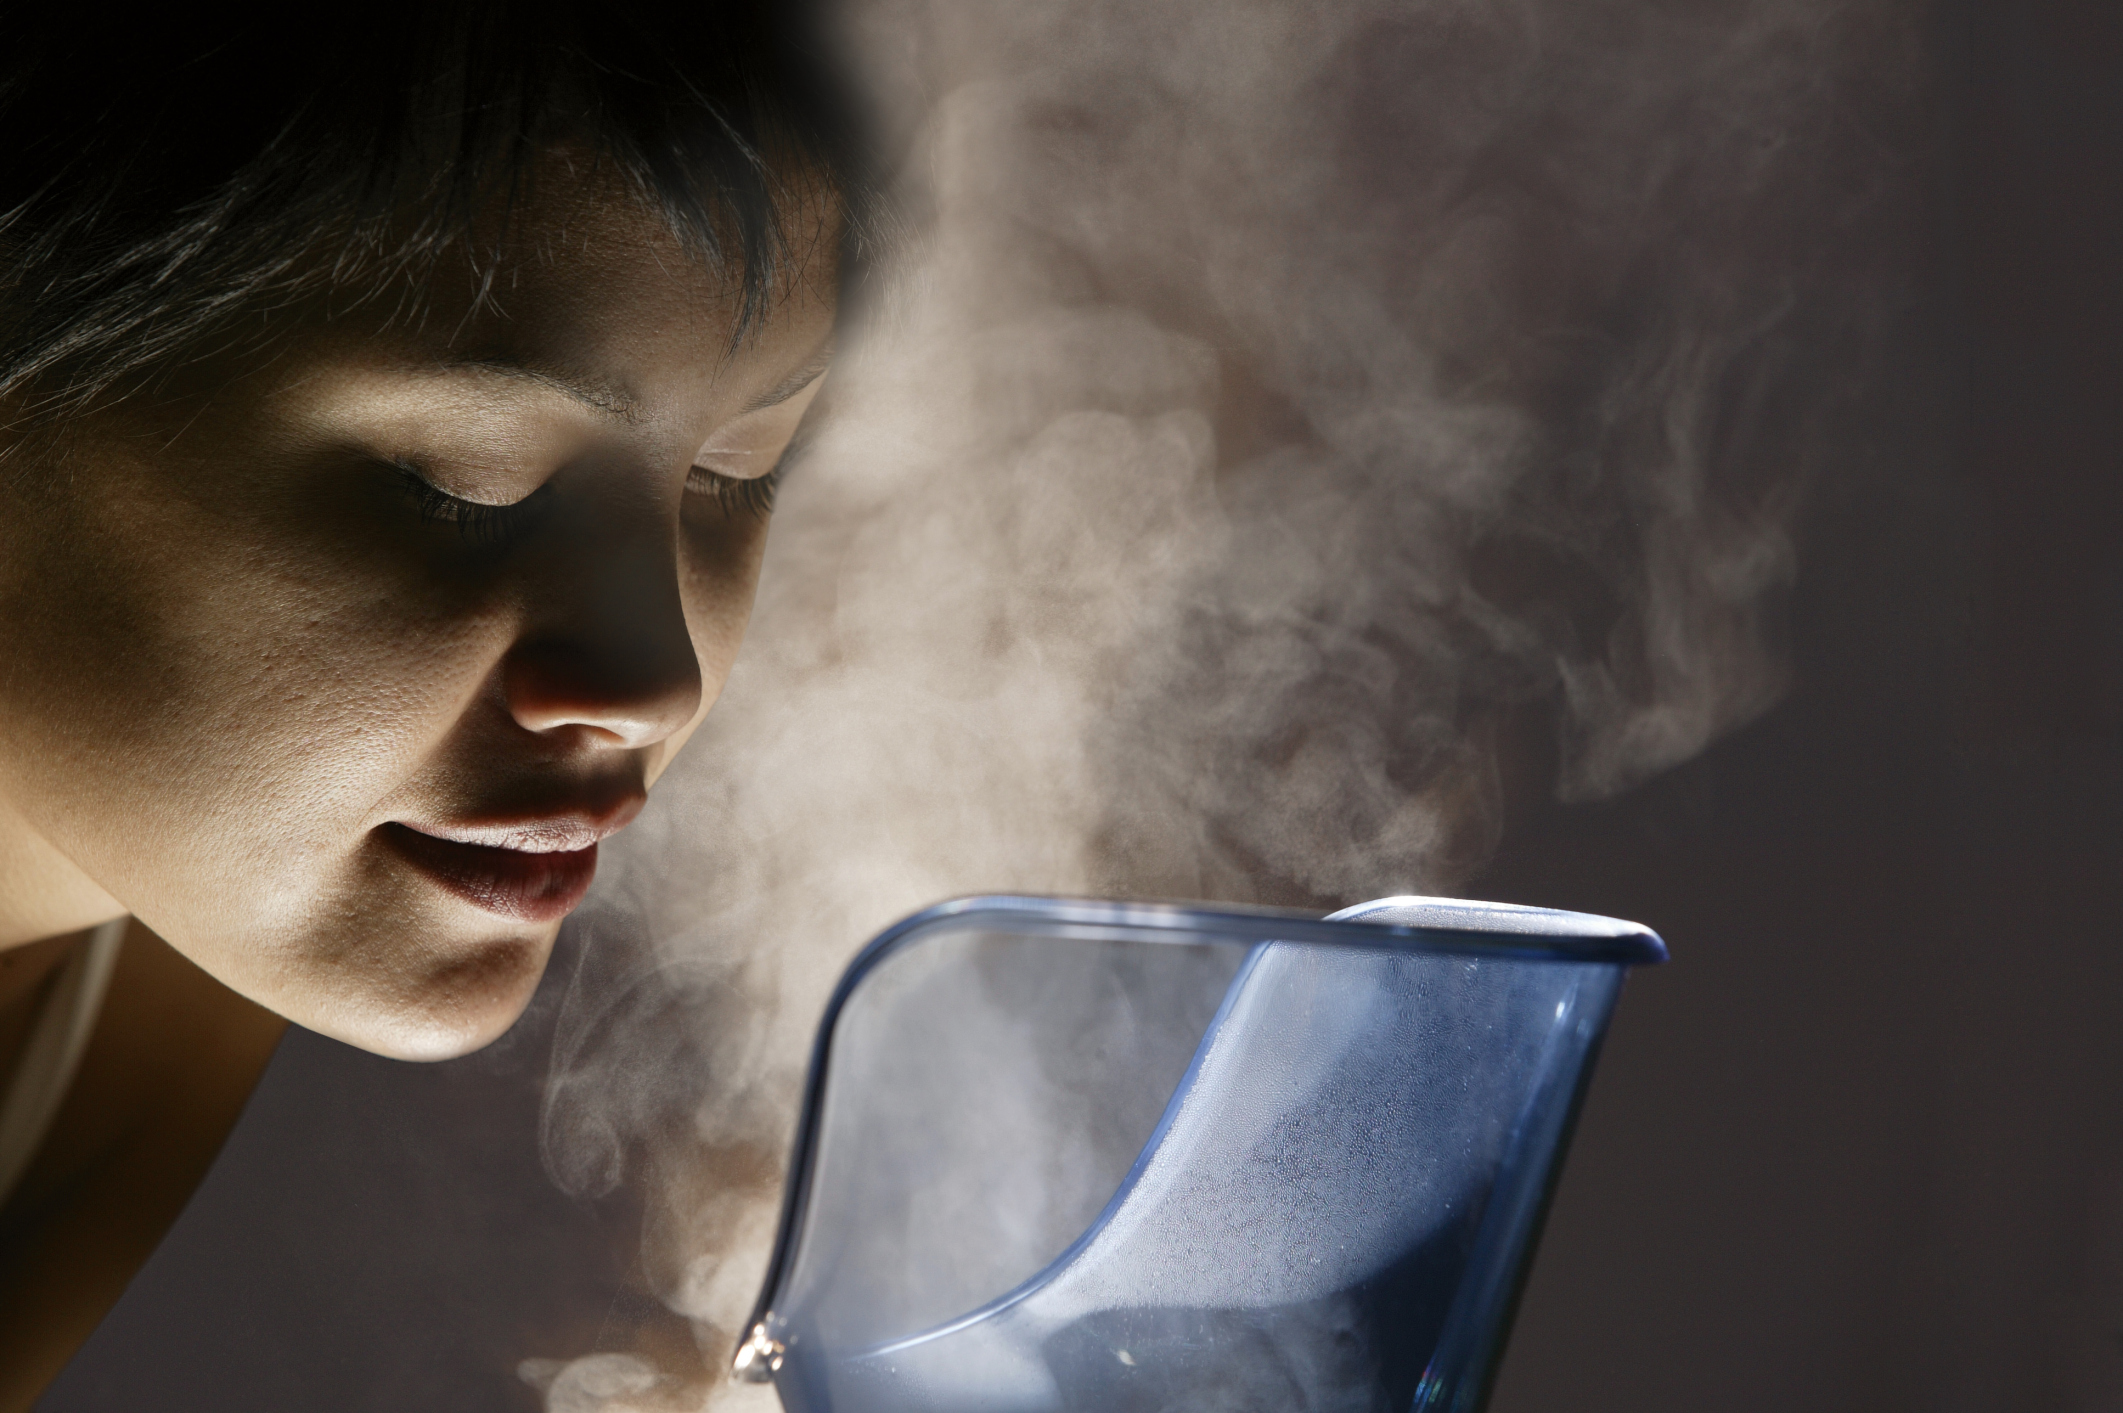 Woman steaming her face. Credit - livestrong.com